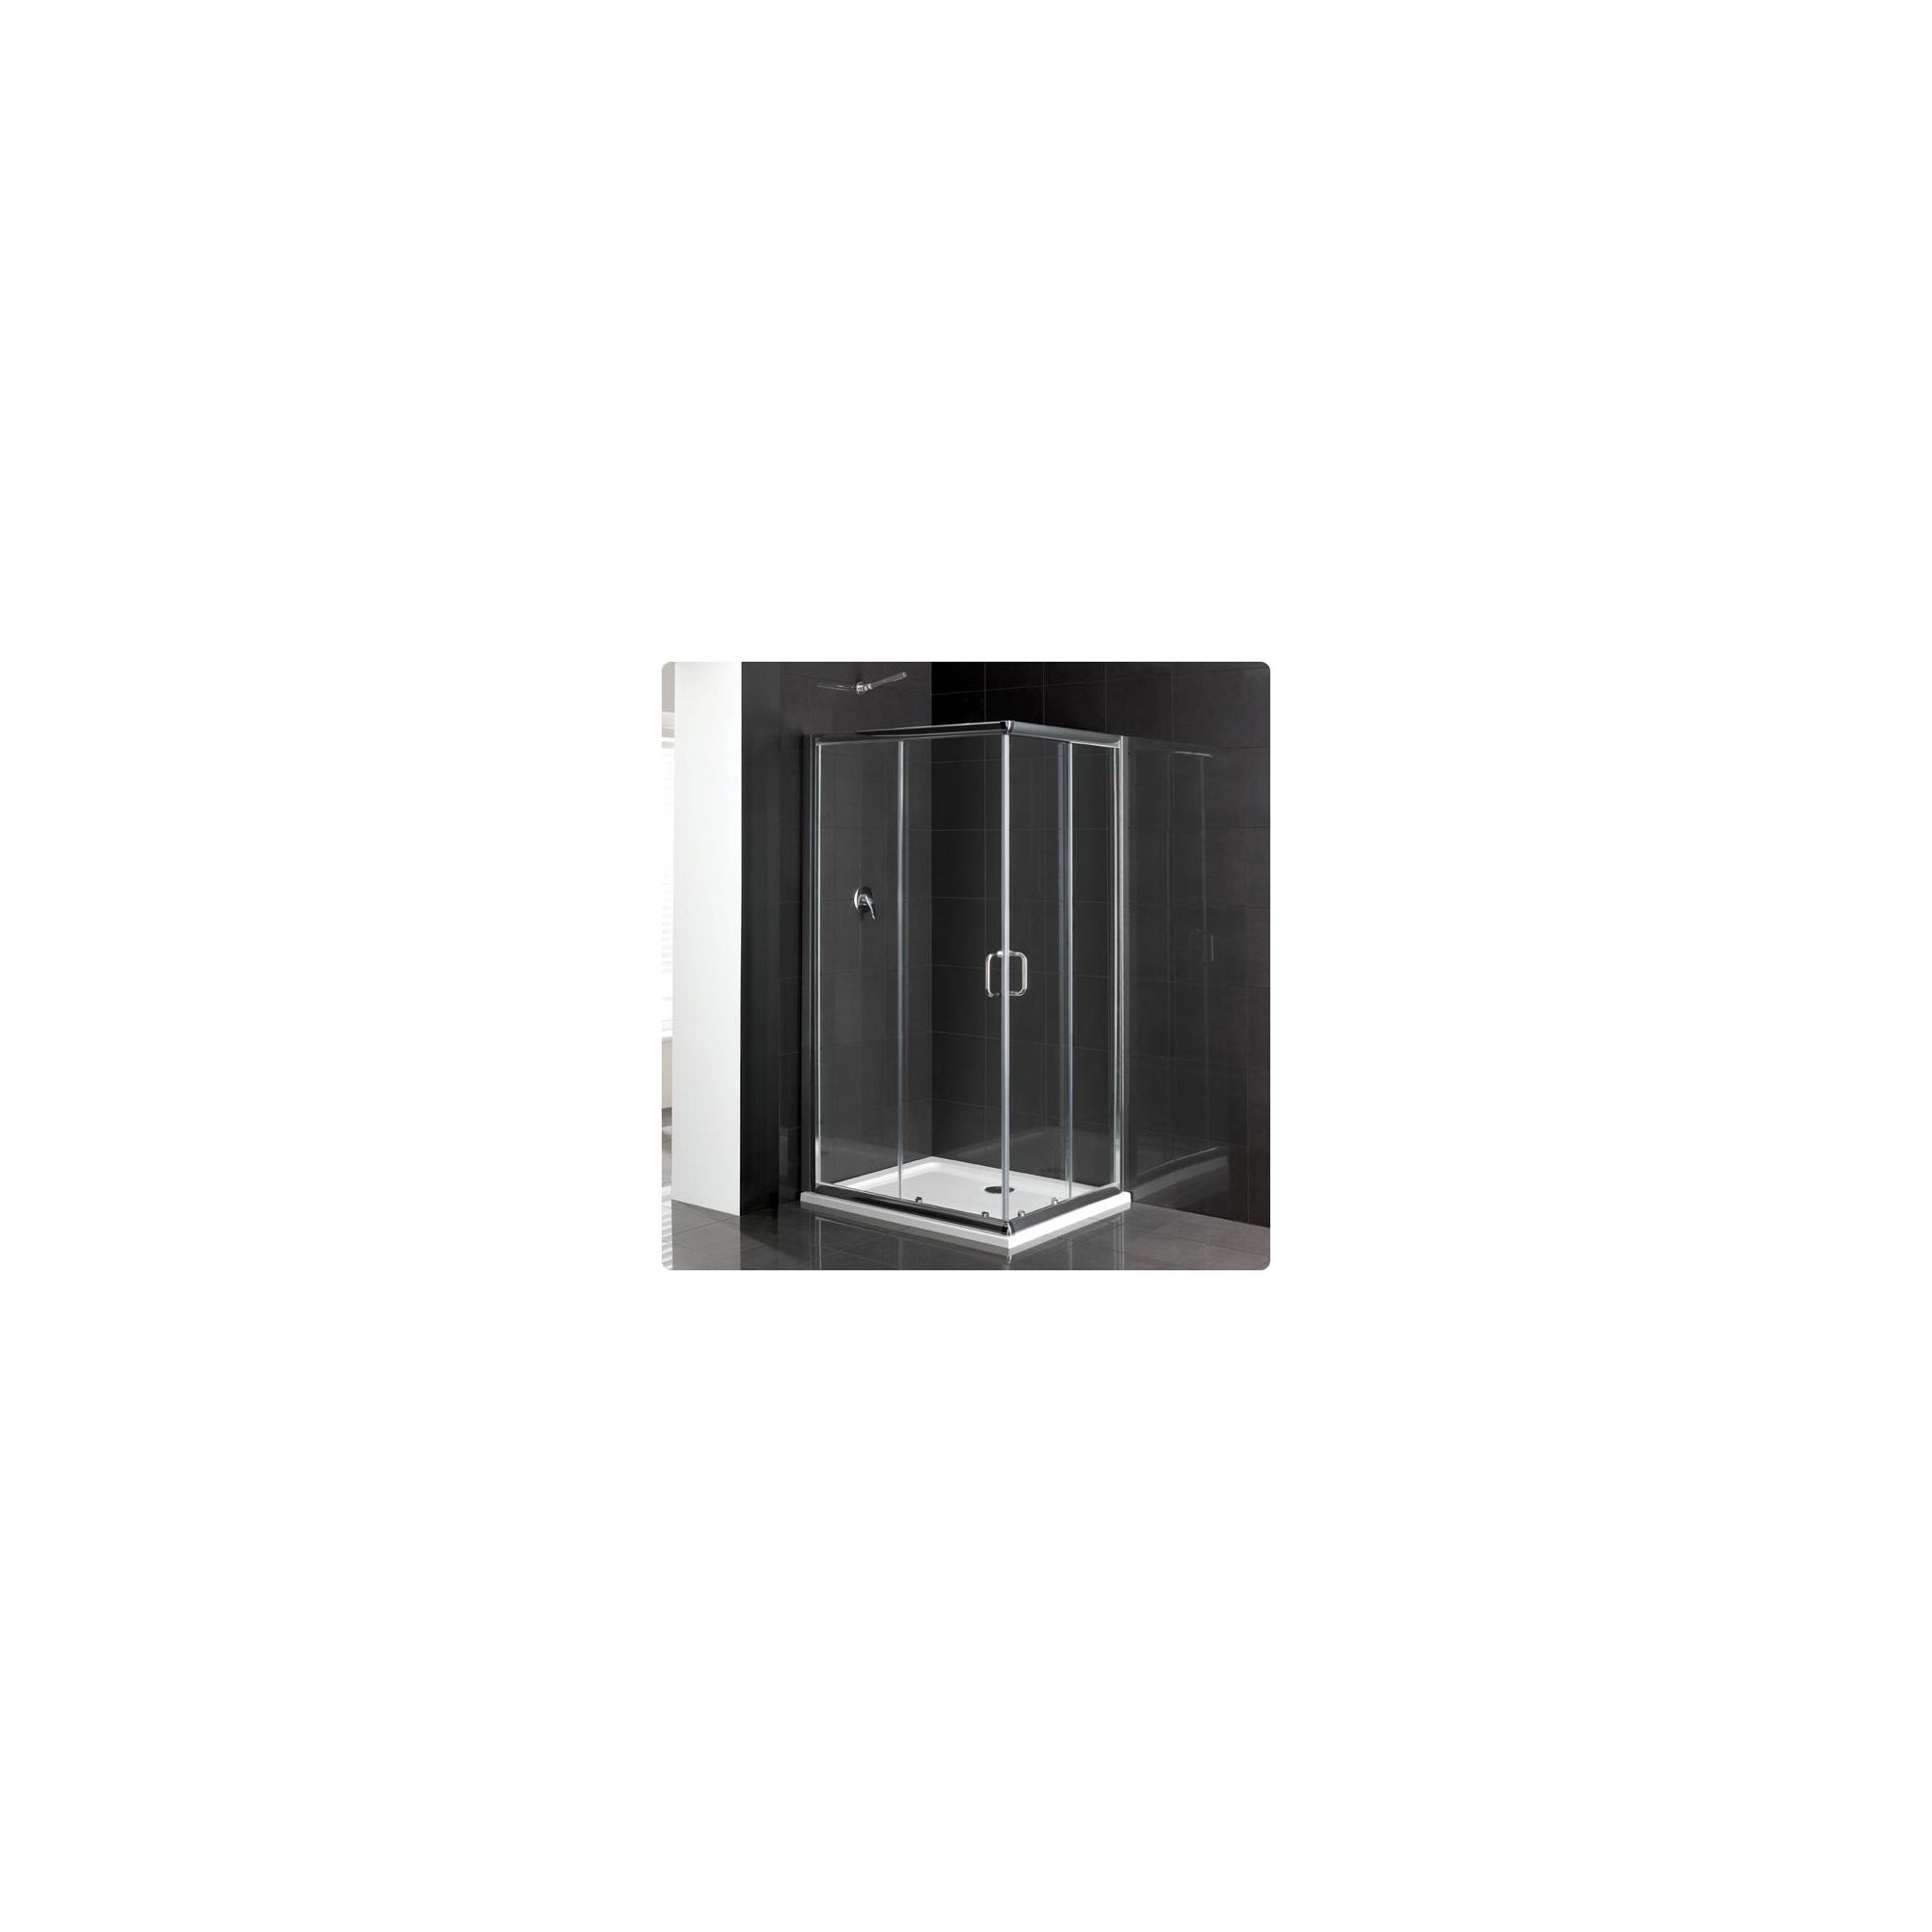 Duchy Elite Silver Offset Corner Entry Shower Enclosure 900mm x 760mm, Standard Tray, 6mm Glass at Tesco Direct